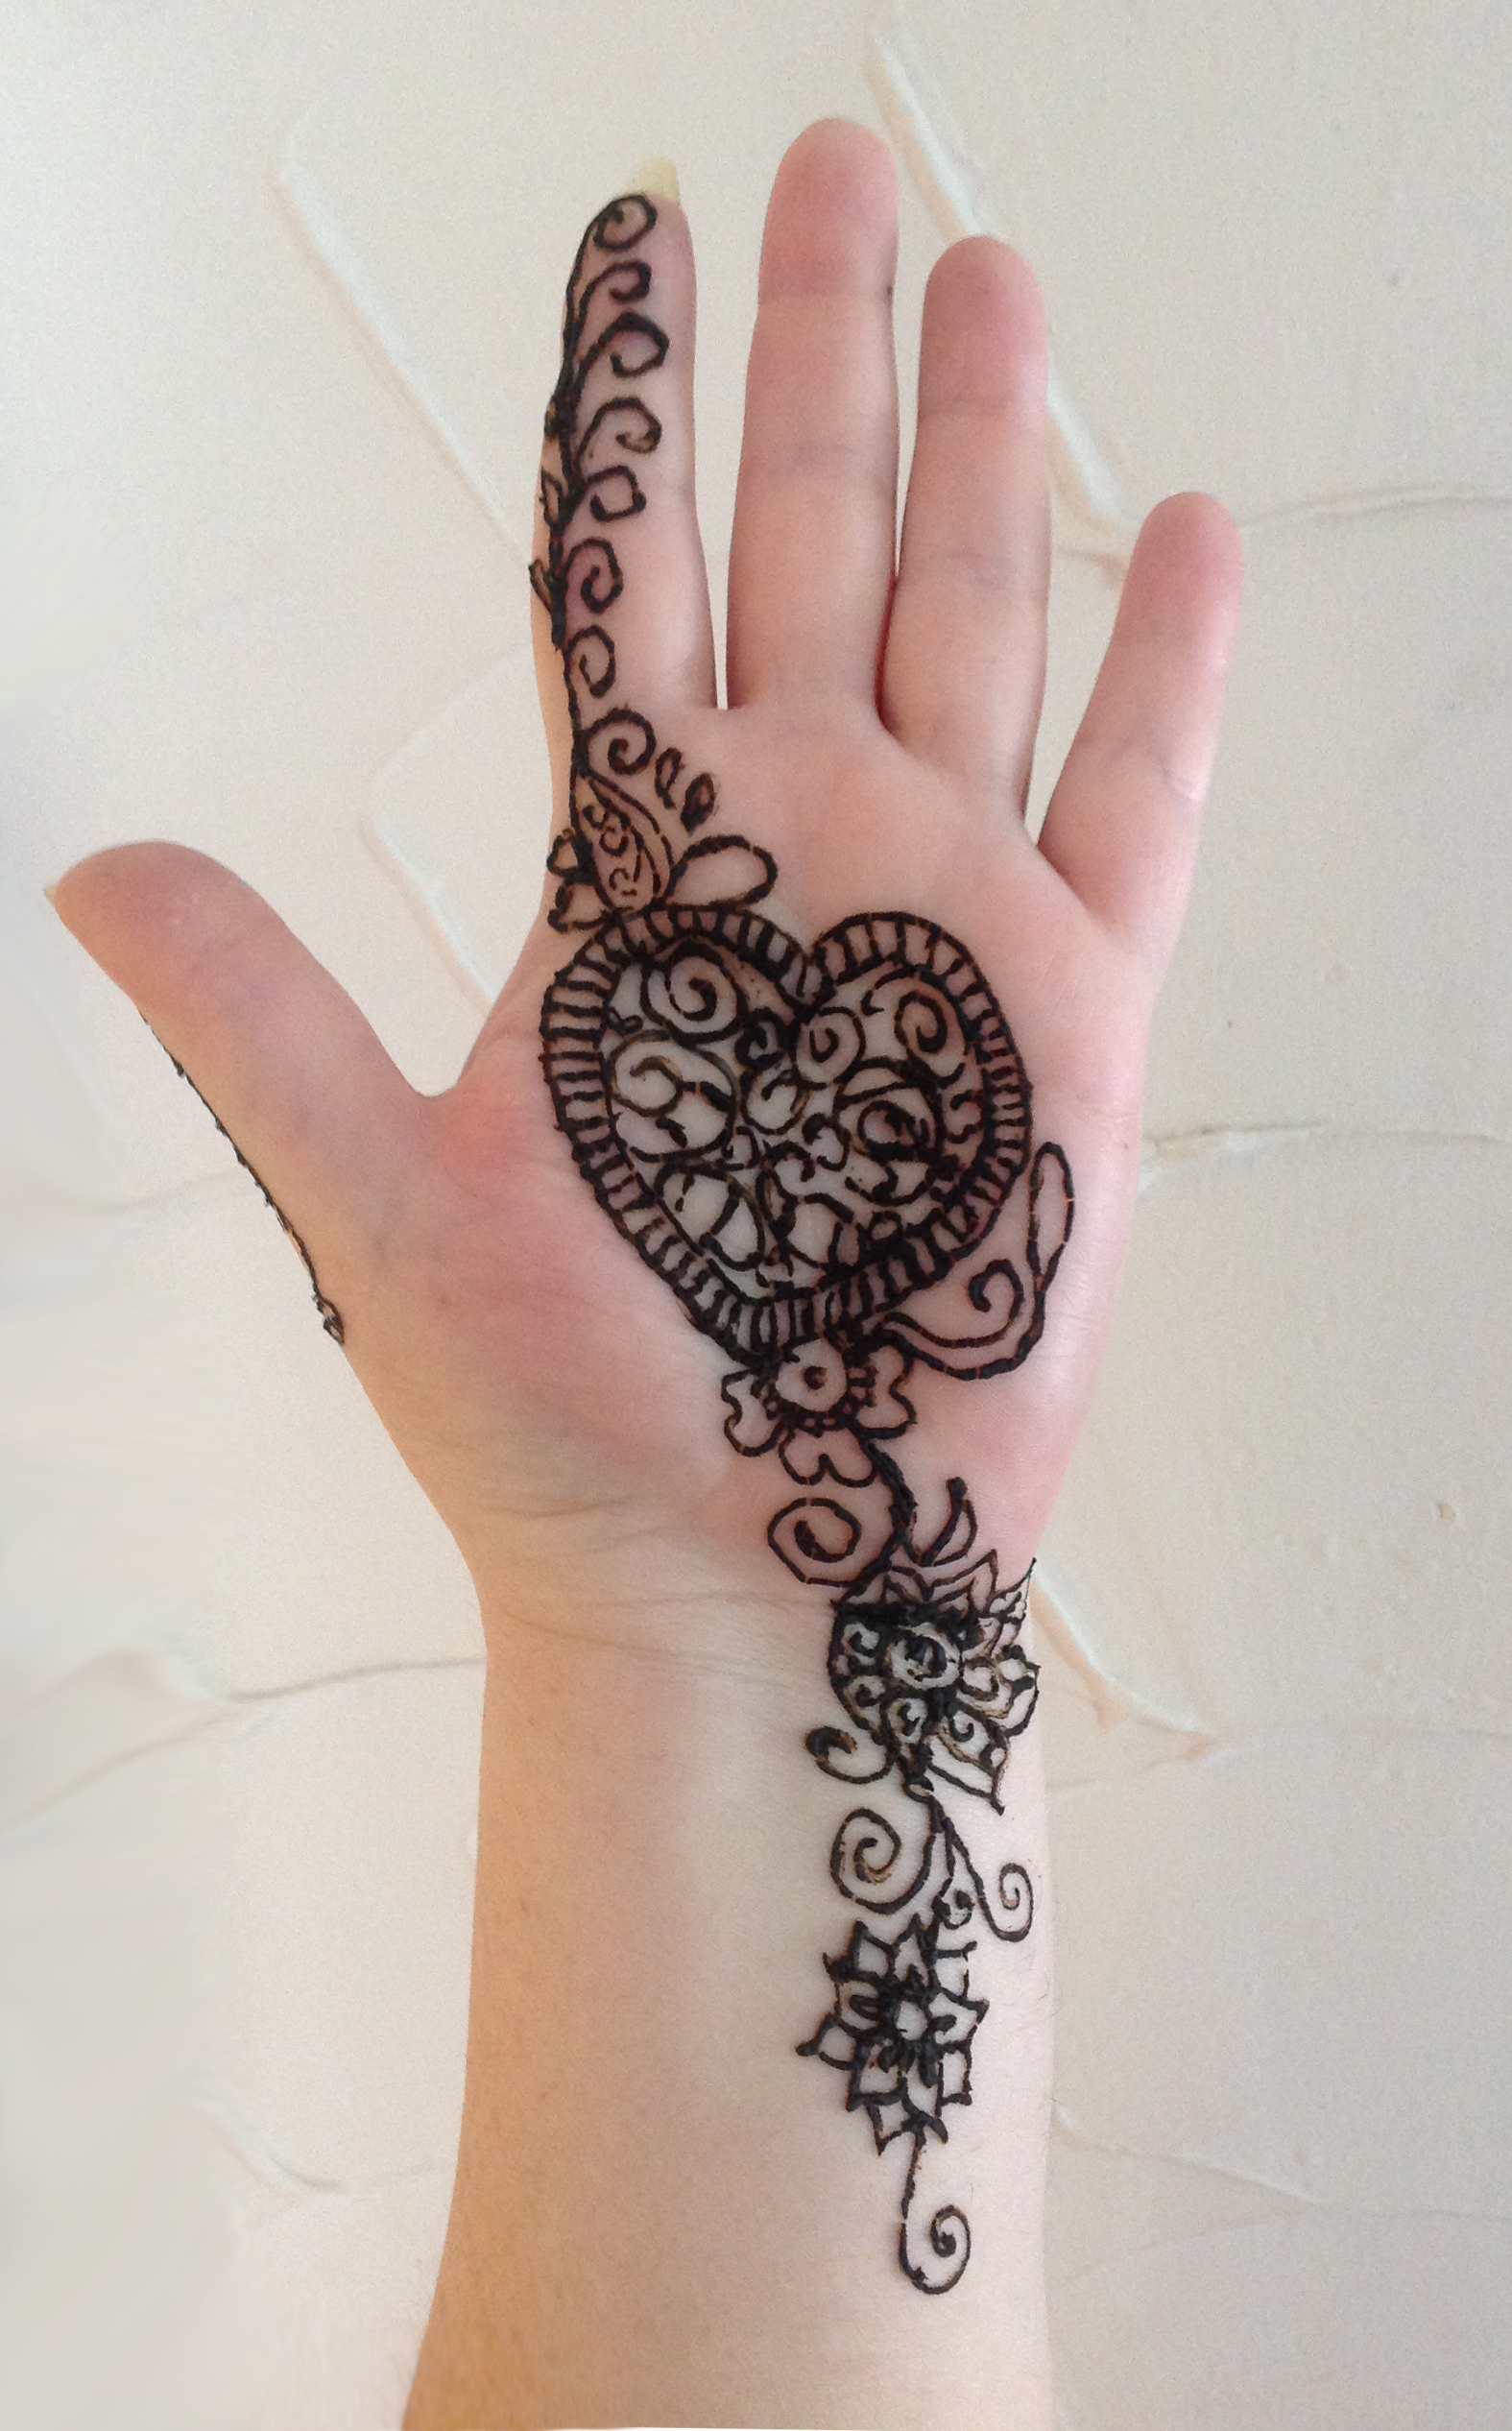 The best mehndi designs for hands livinghours - Wonderful Henna Mehndi Designs For Hand